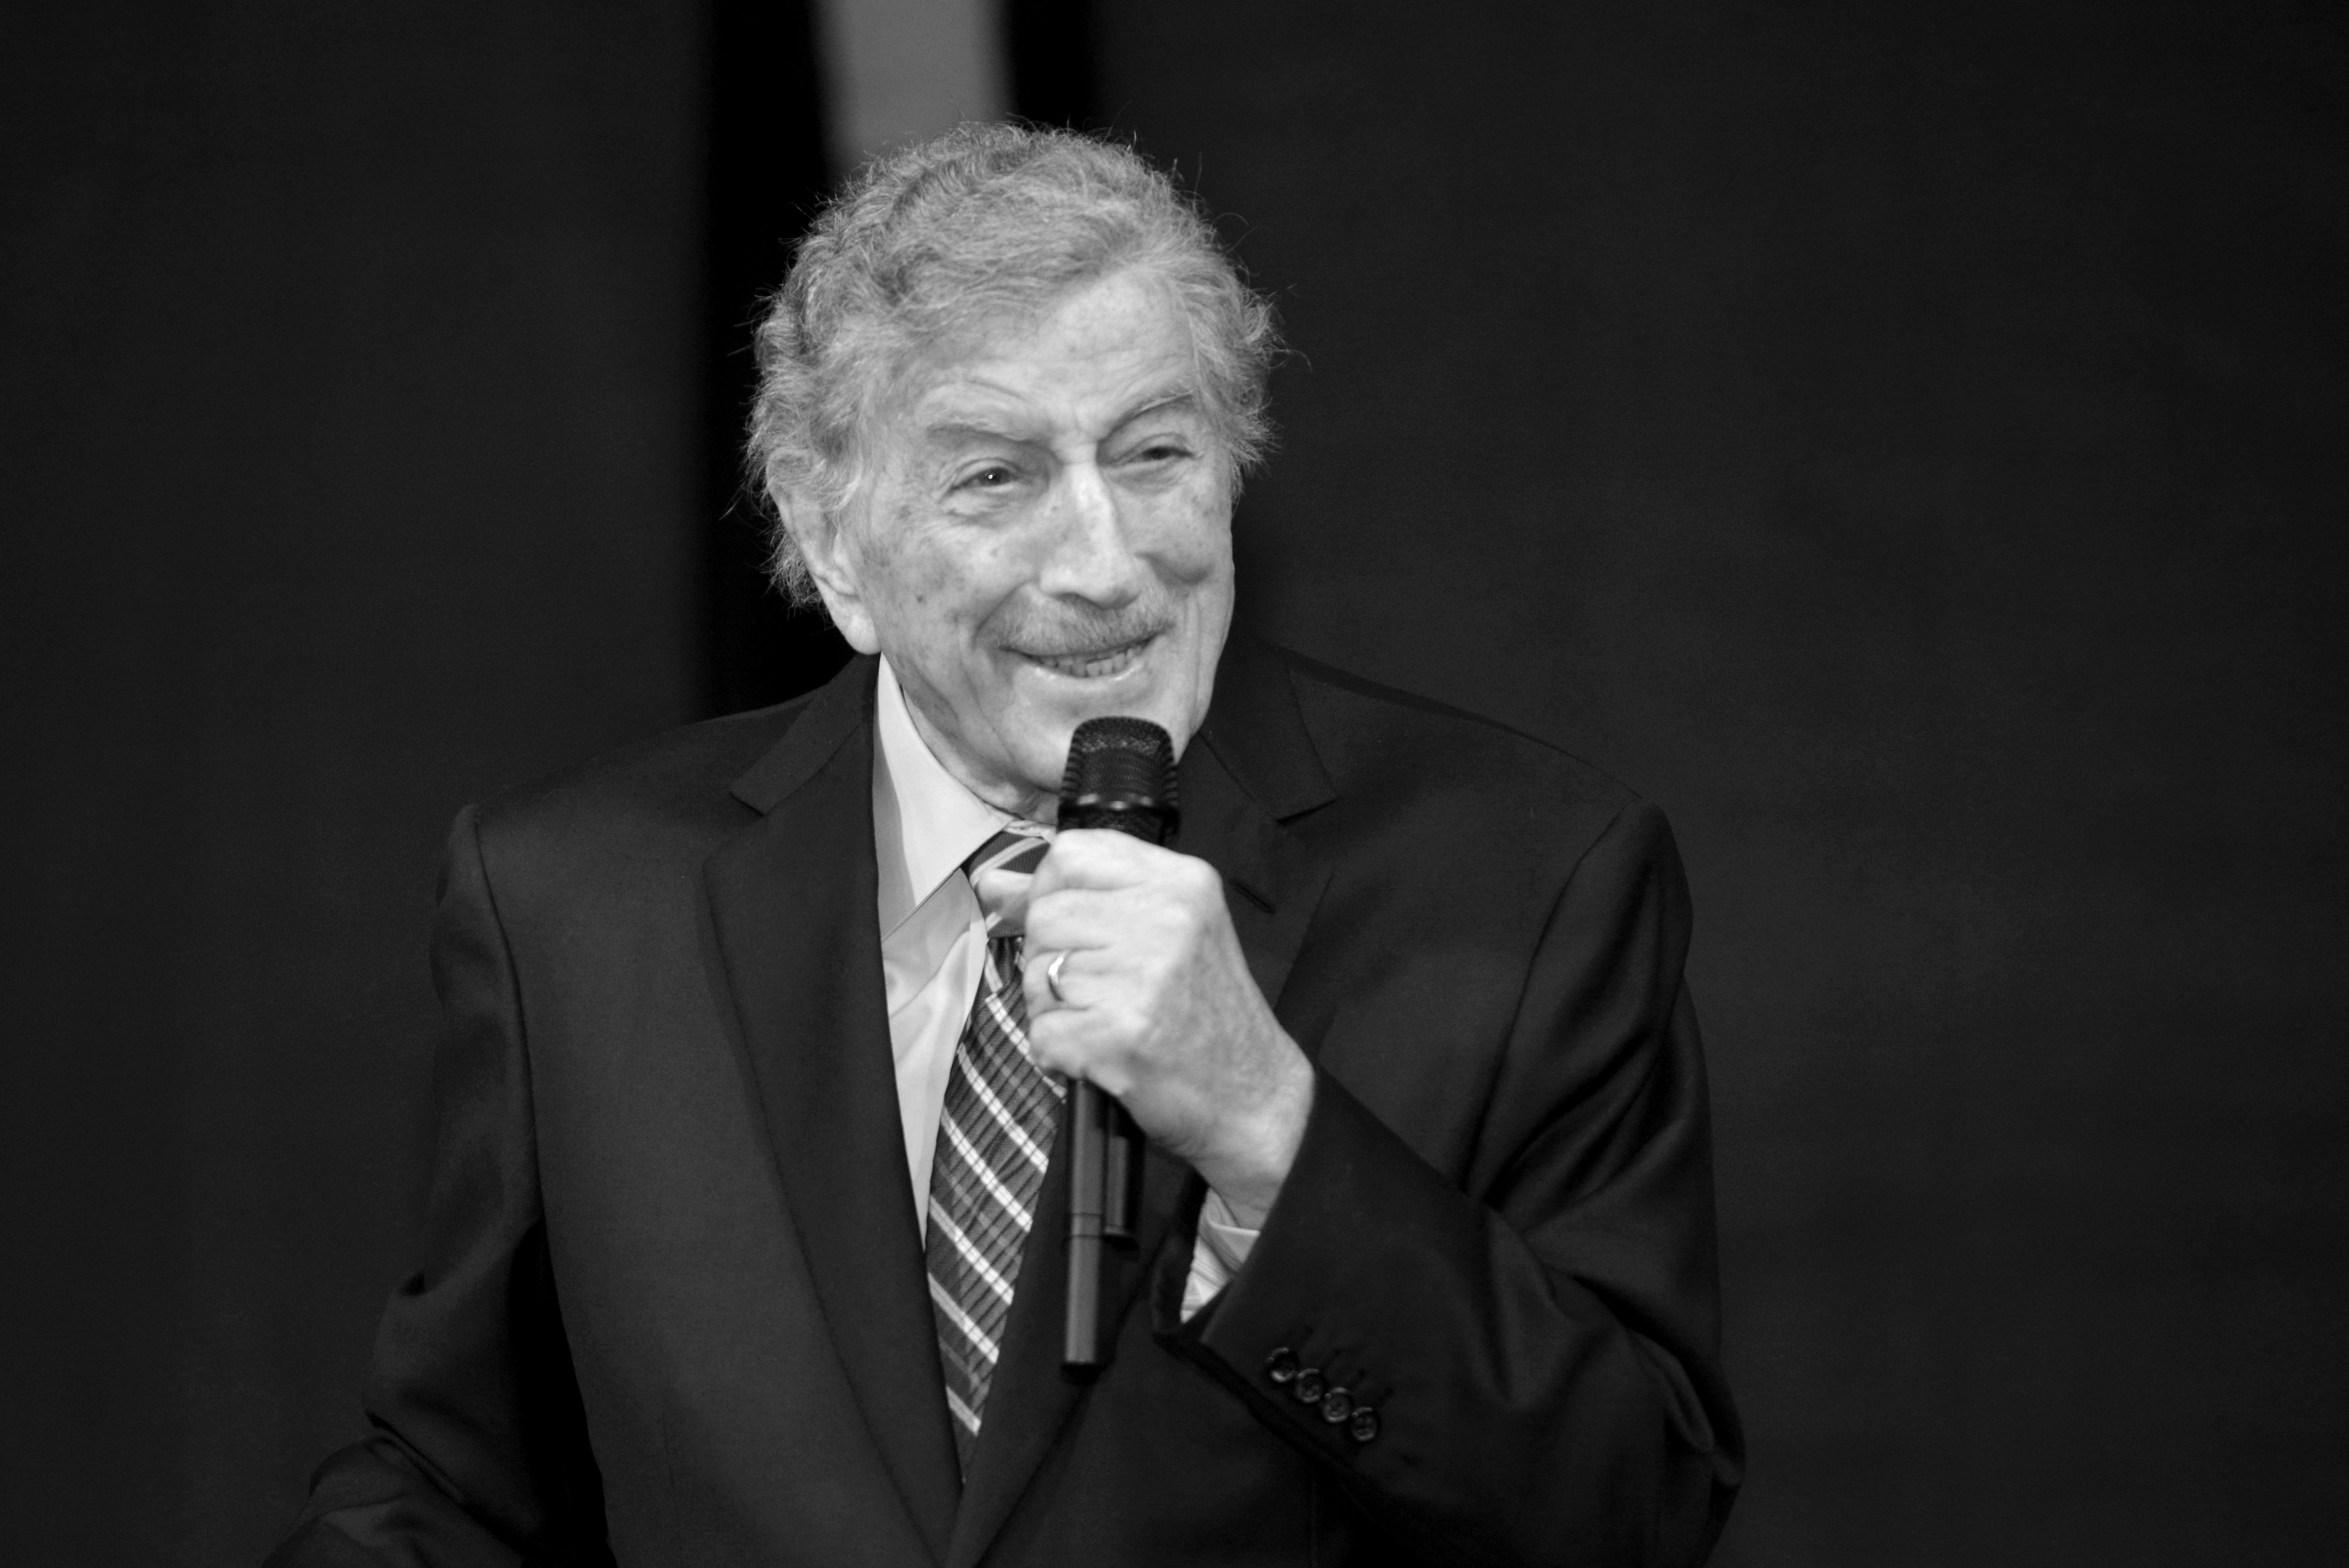 Tony Bennett performs onstage during the Central Park Conservancy Supper Club at Rumsey Playfield, Central Park on November 20, 2019 in New York City.  | Source: Getty Images